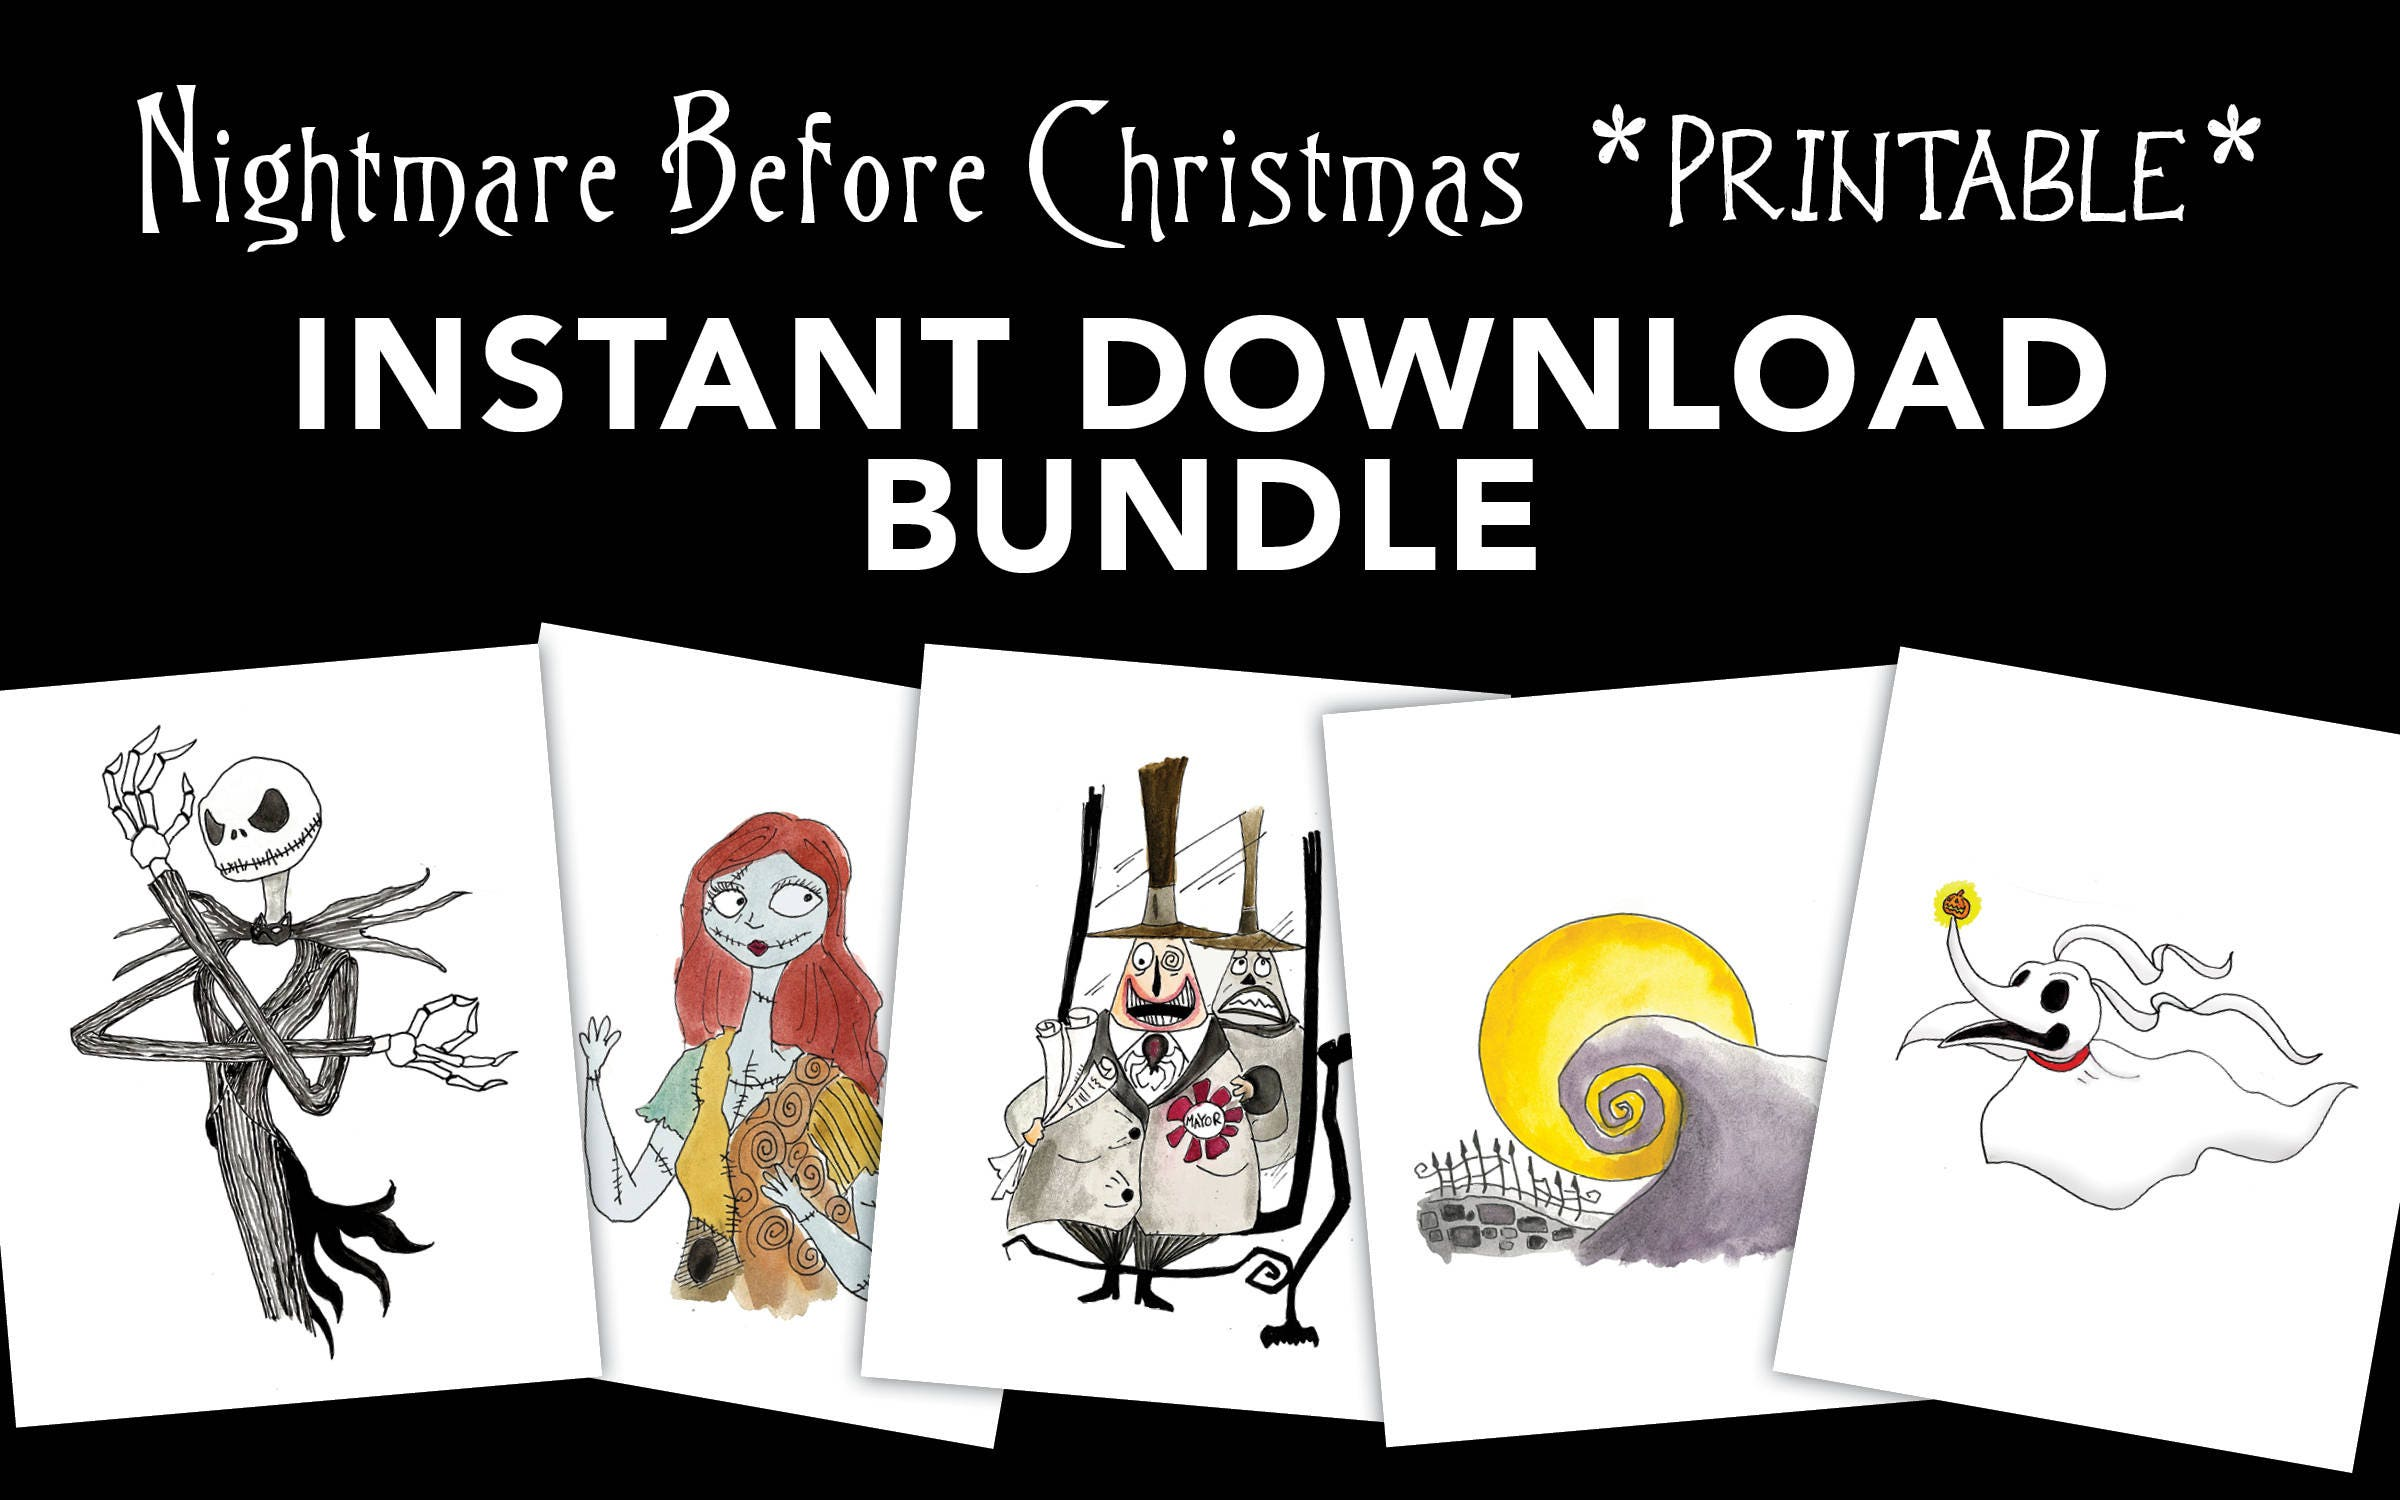 Nightmare Before Christmas Printable Instant Download